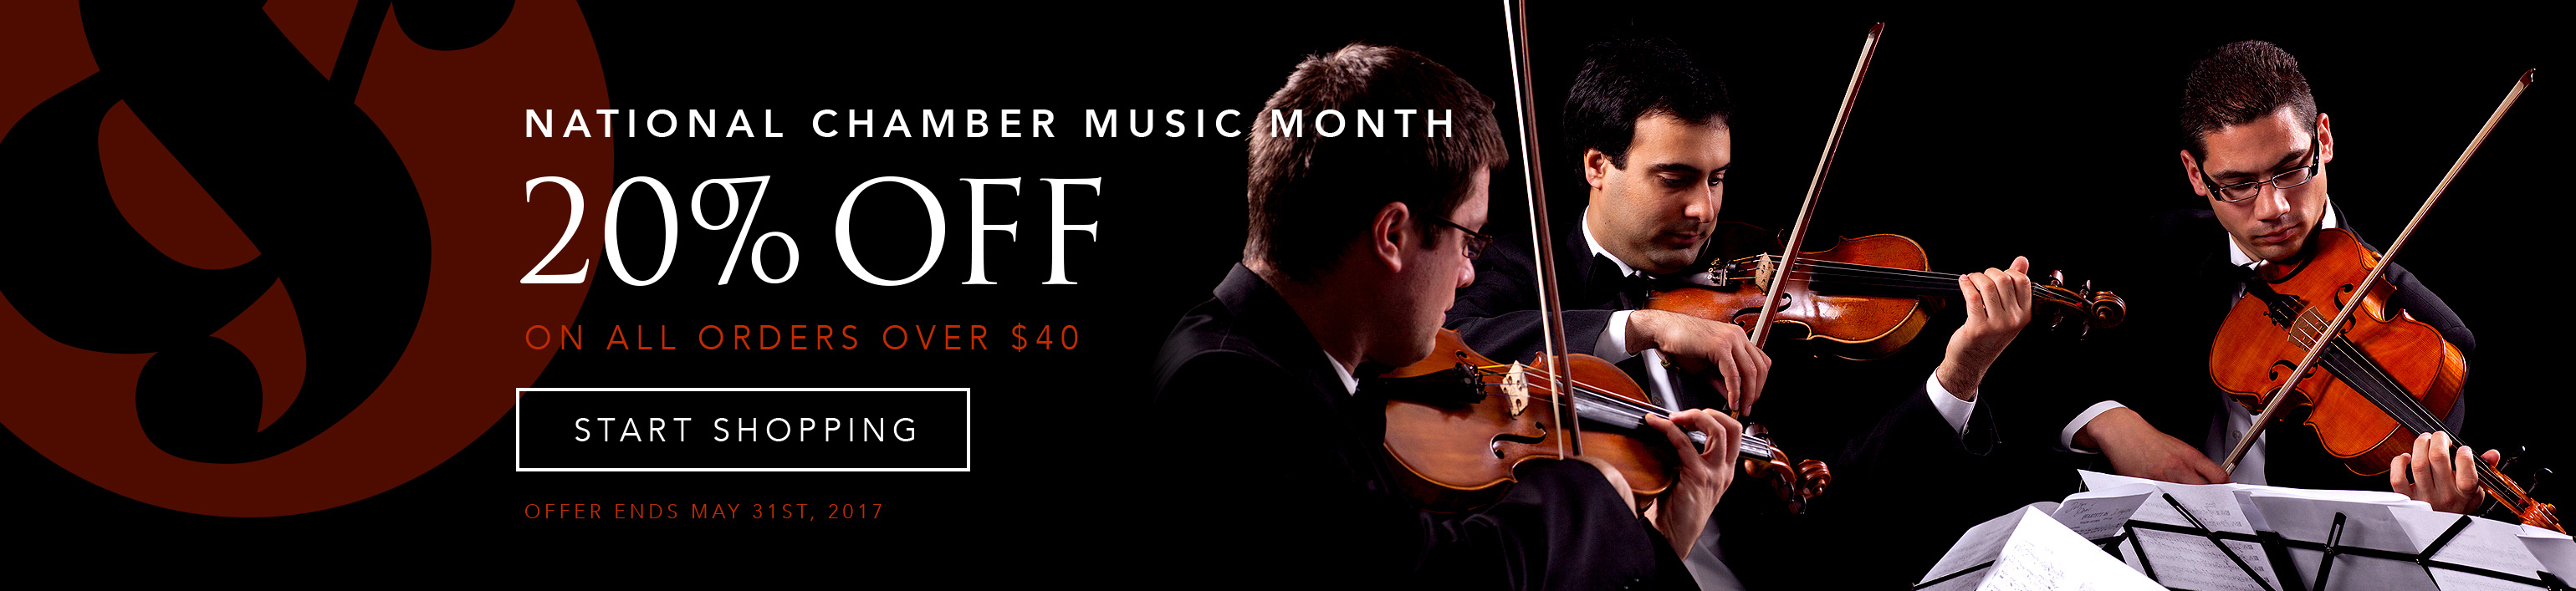 National Chamber Music Month